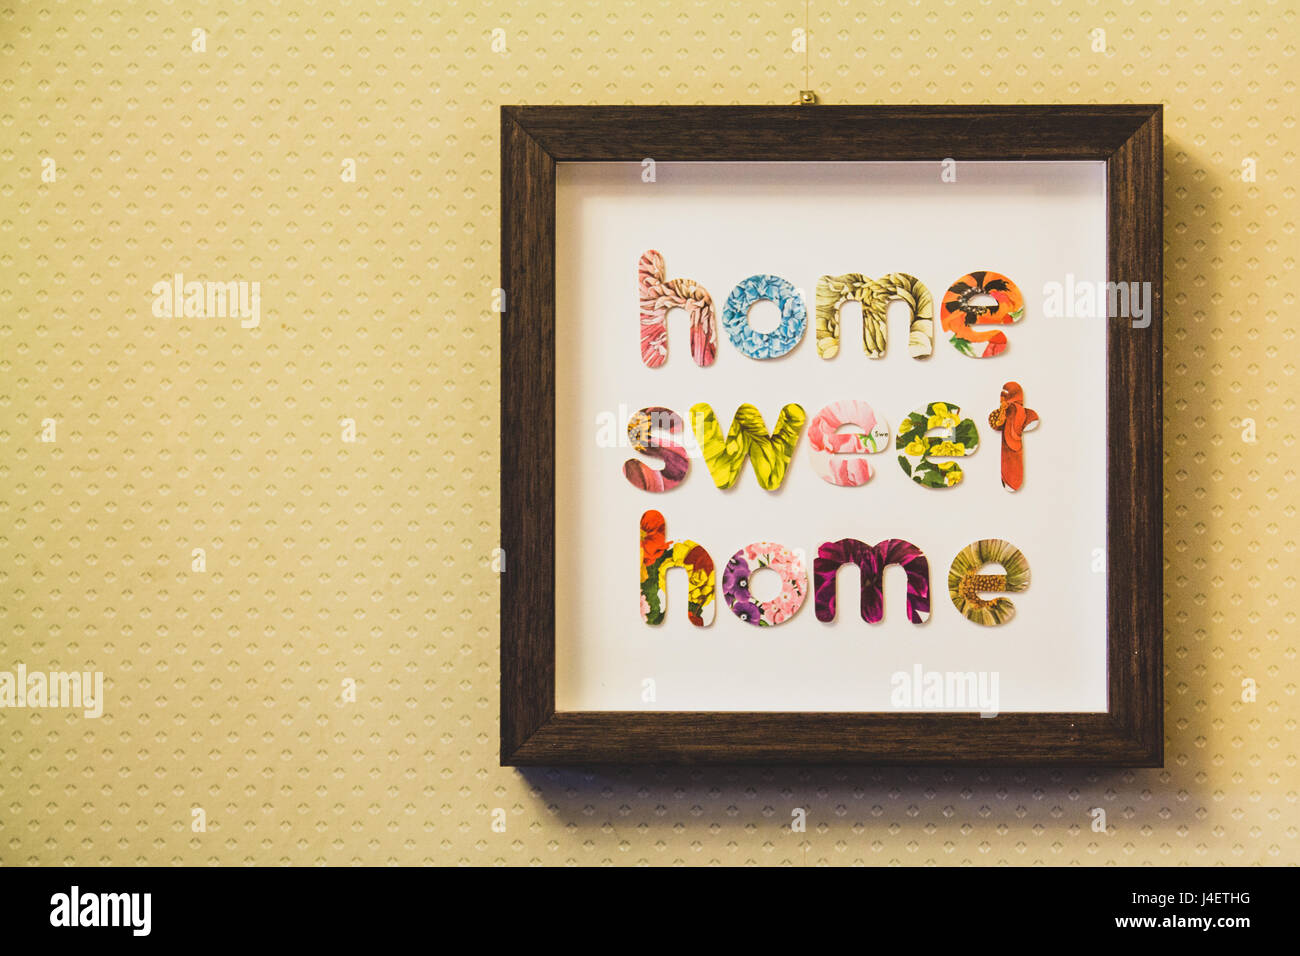 Framed letters home sweet home hung on a wall - Stock Image